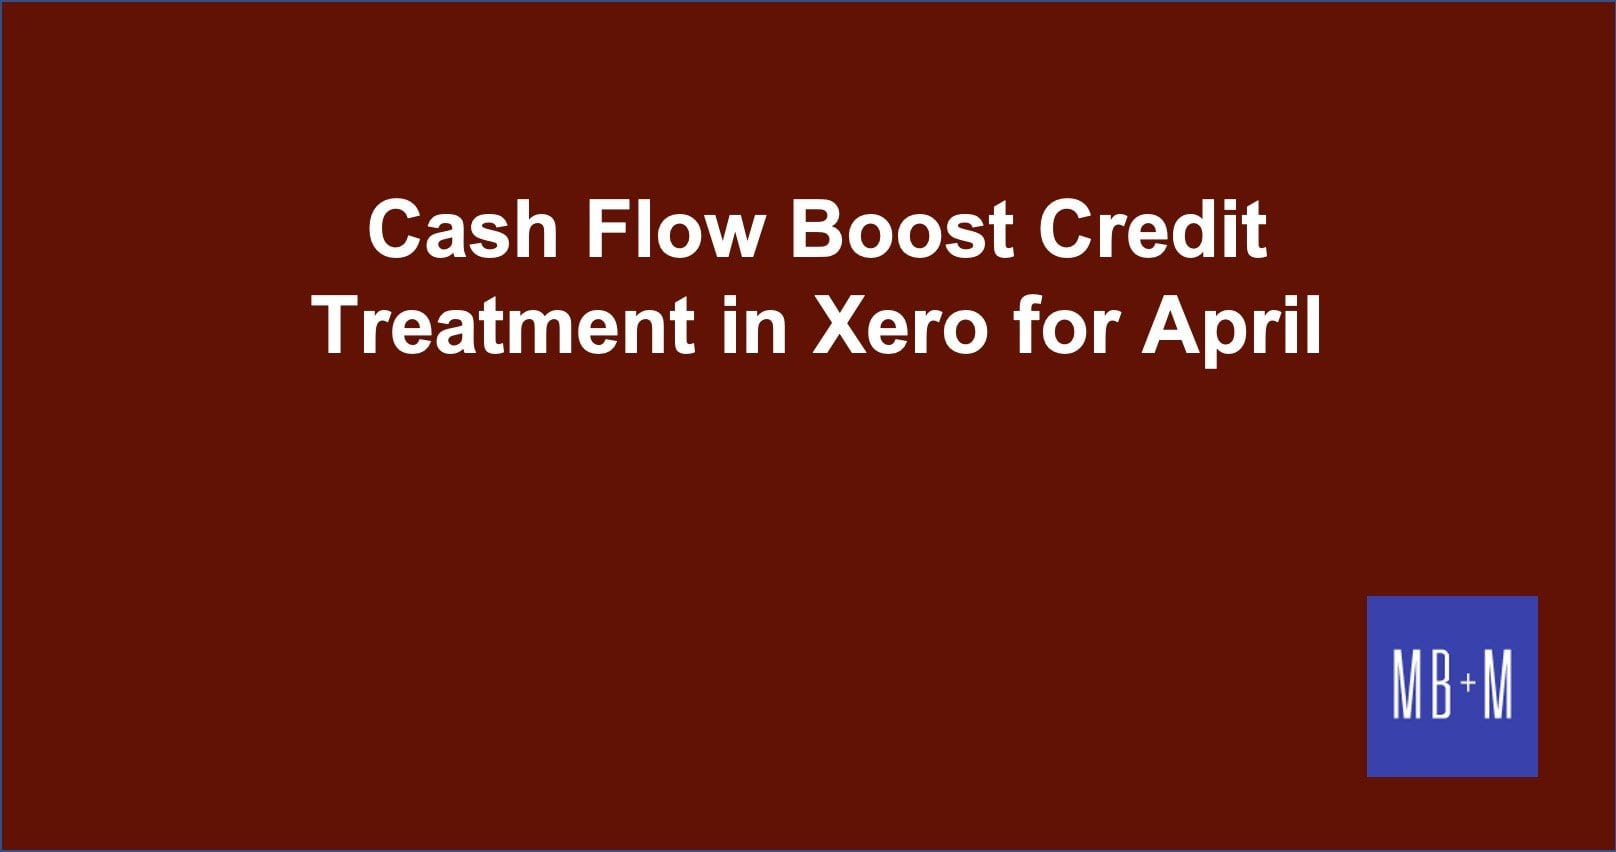 Government Cash Flow Boost Credit Process in Xero for April